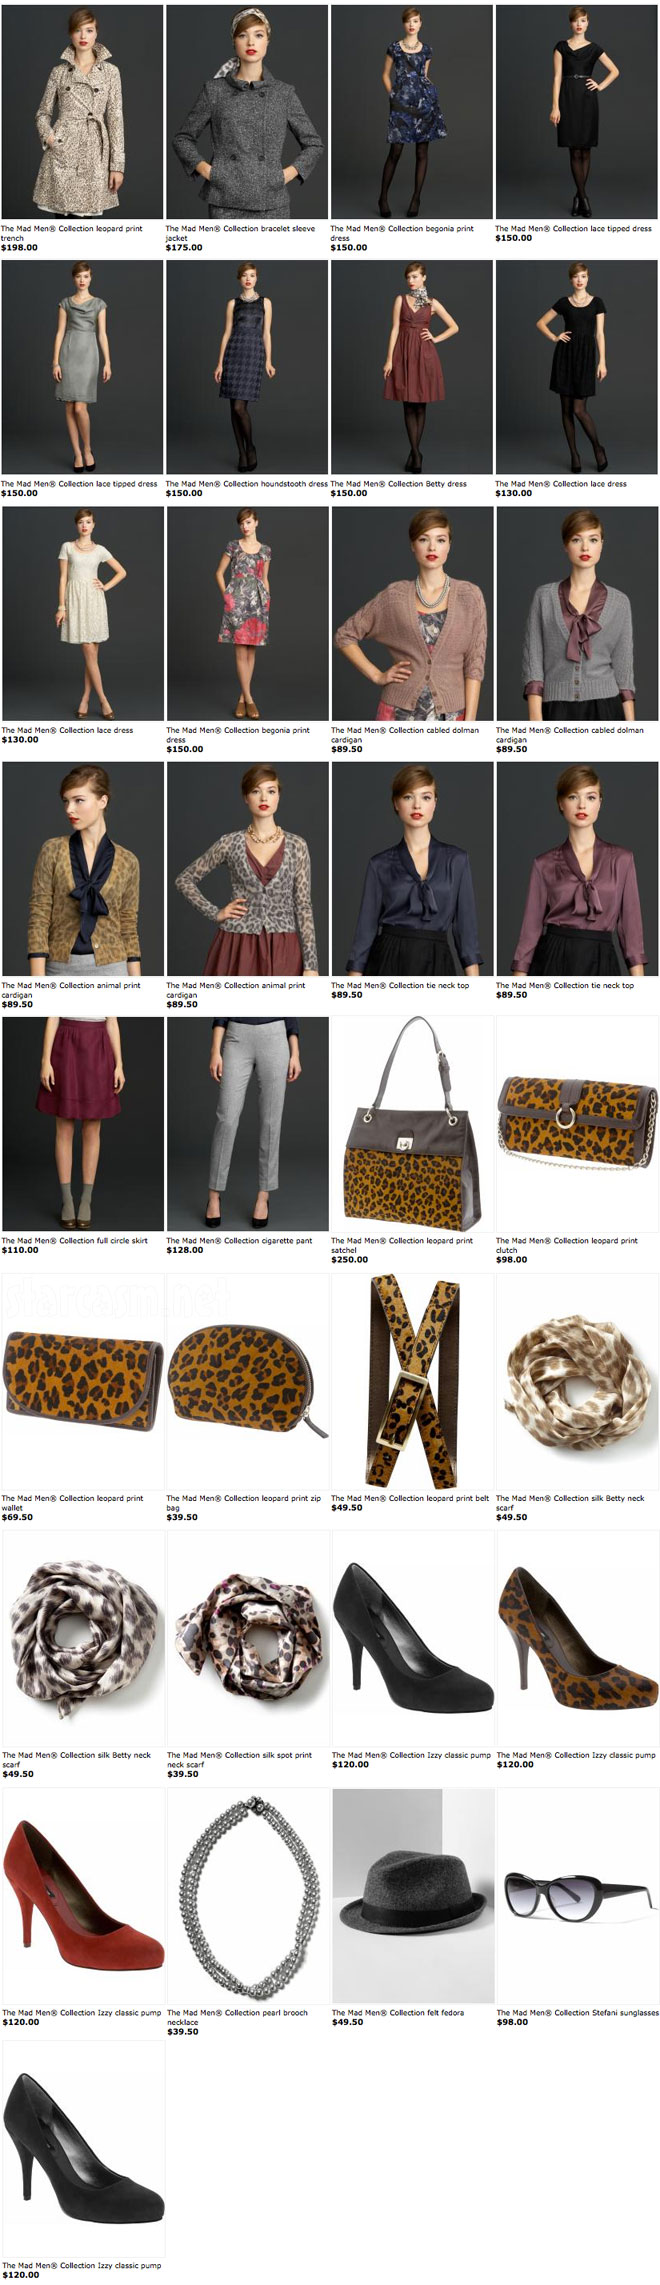 All of the womens clothing and accessories from the Banana Republic Mad Men collection